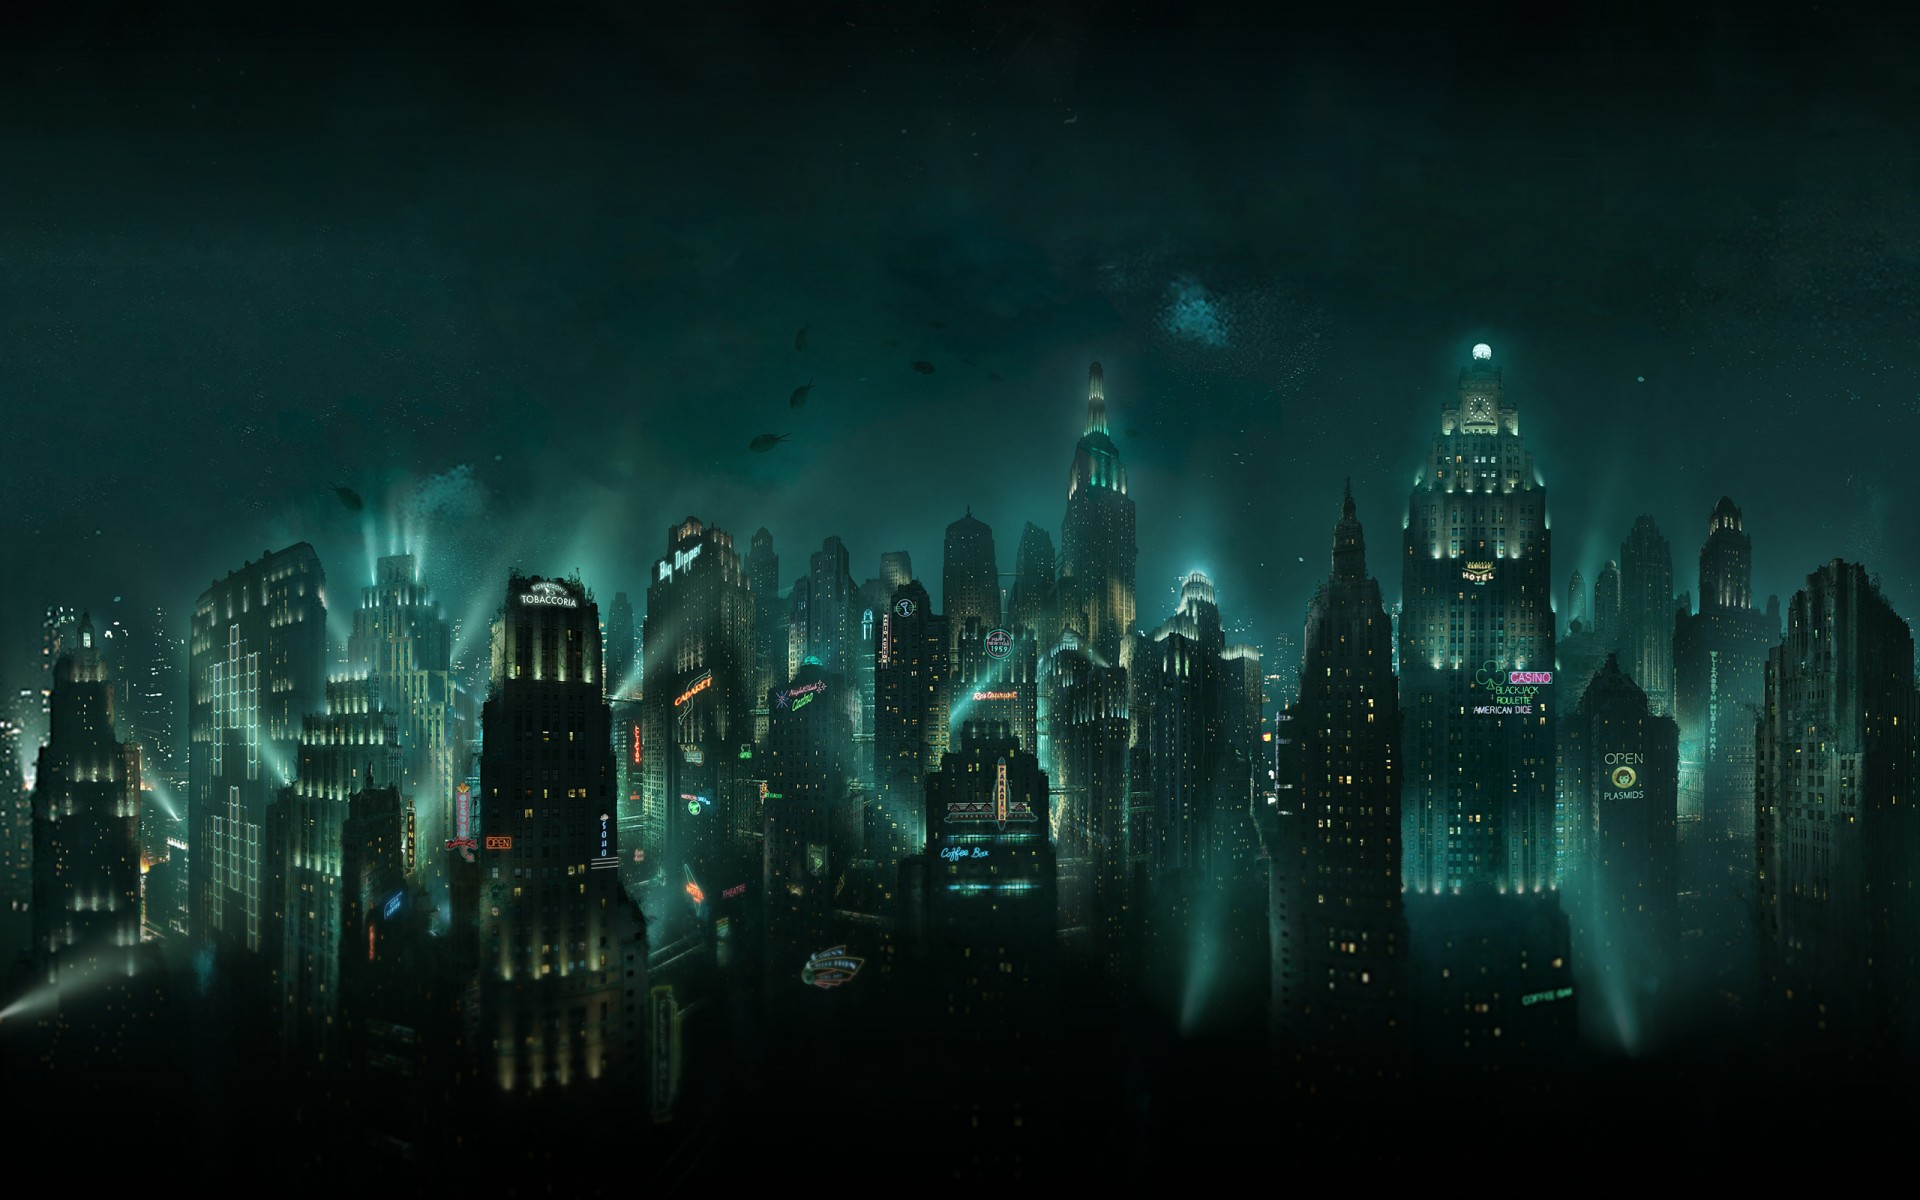 1920x1080 Wallpaper Abstract 3d Bioshock Rapture Wallpapers Hd Wallpapers Id 11791